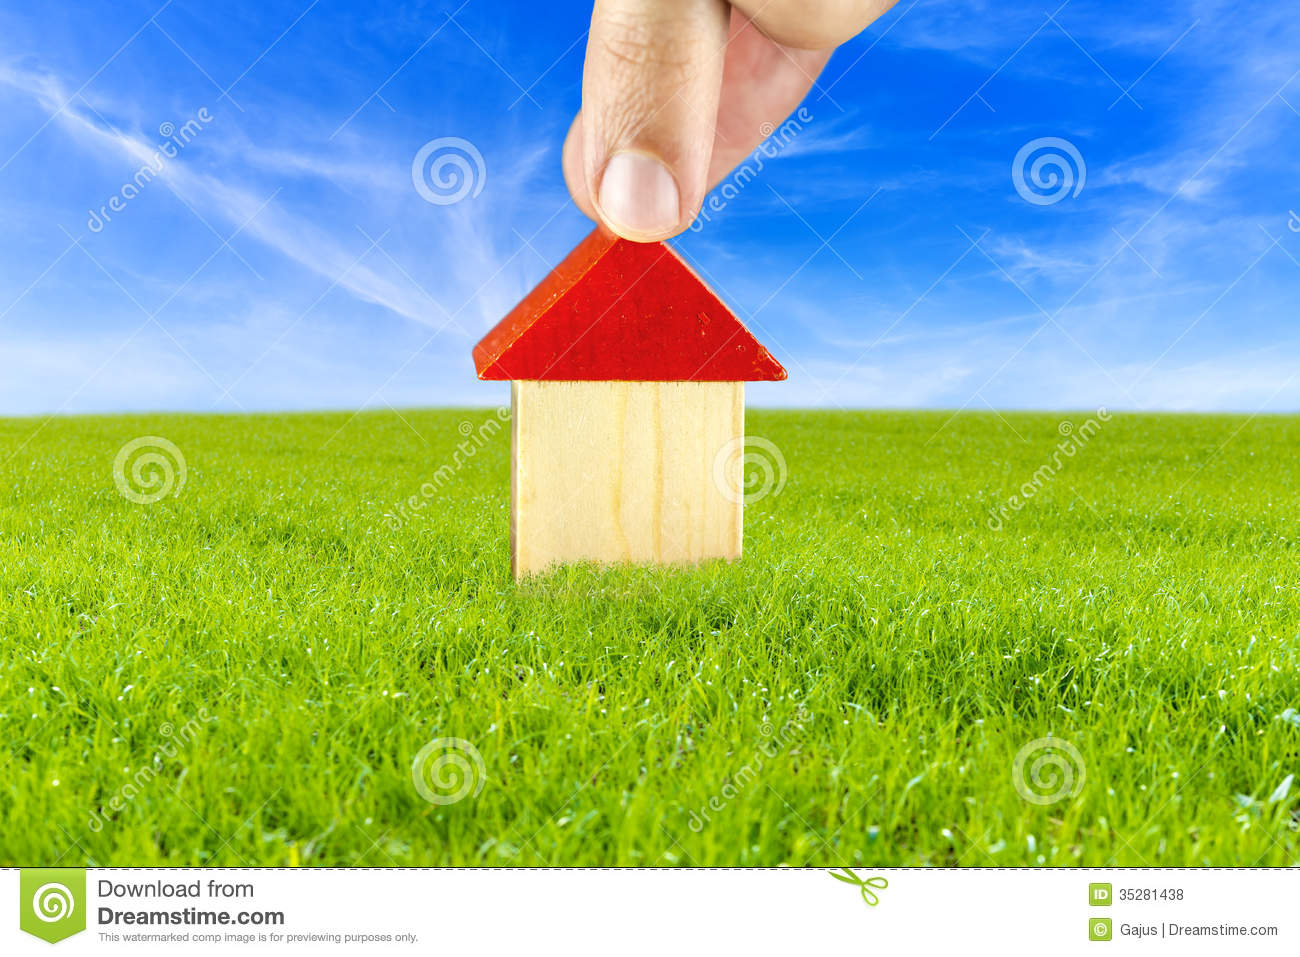 plan of a house in safe and clean environment stock photo